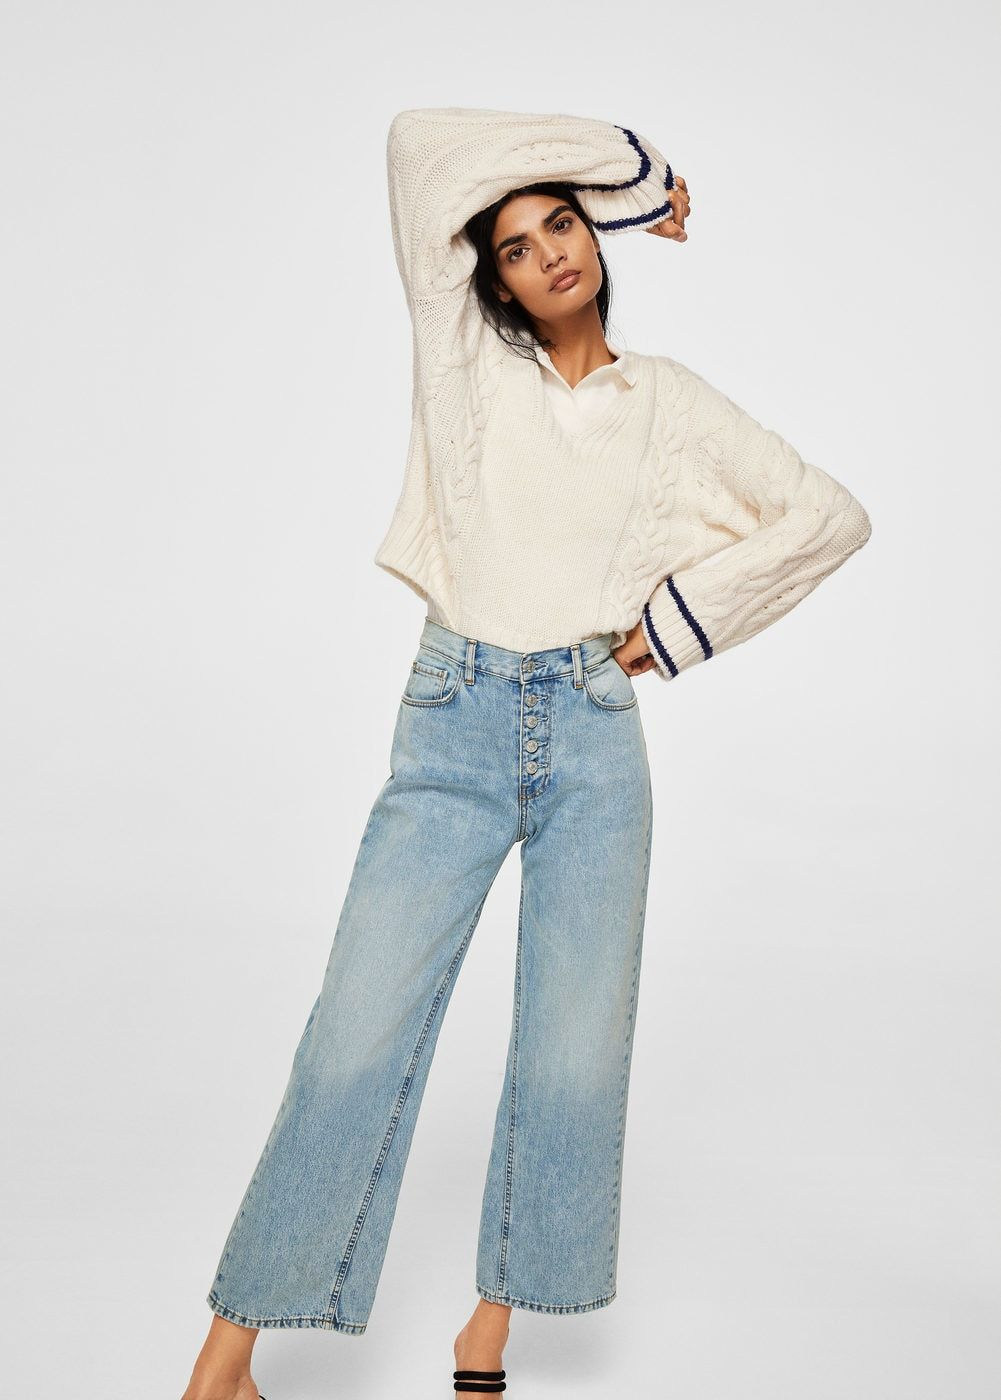 MANGO relaxed vintage Mujer España Jeans td4qFXwX